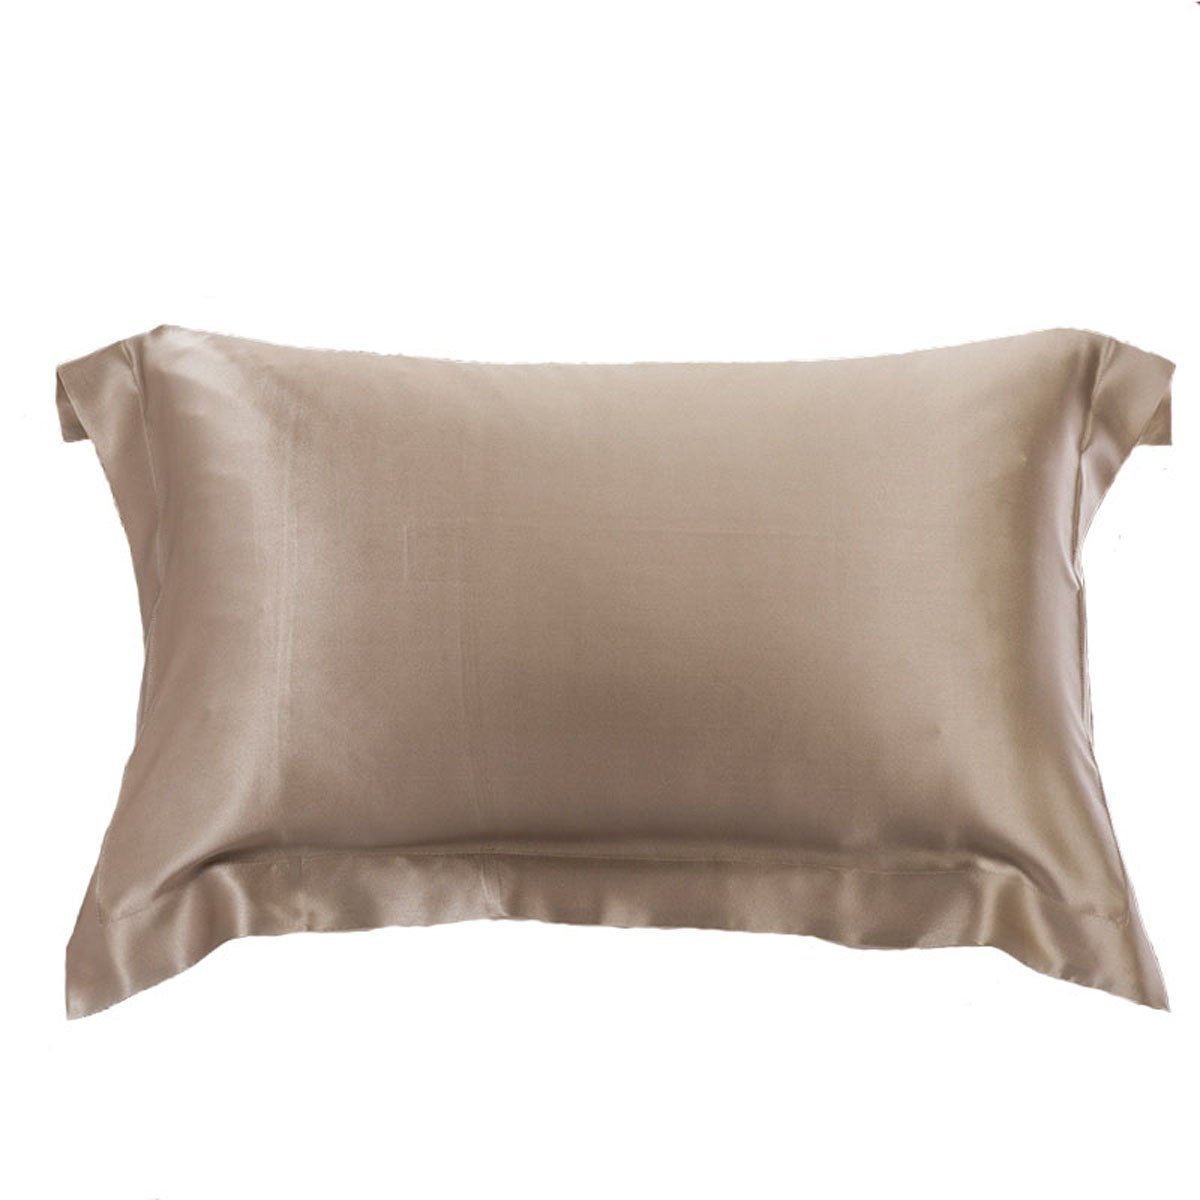 Oosilk 100% Pure Mulberry Charmeuse Silk Pillowcase Cover 19mm for Hair Beauty, 1pc (Standard/Queen, Taupe)